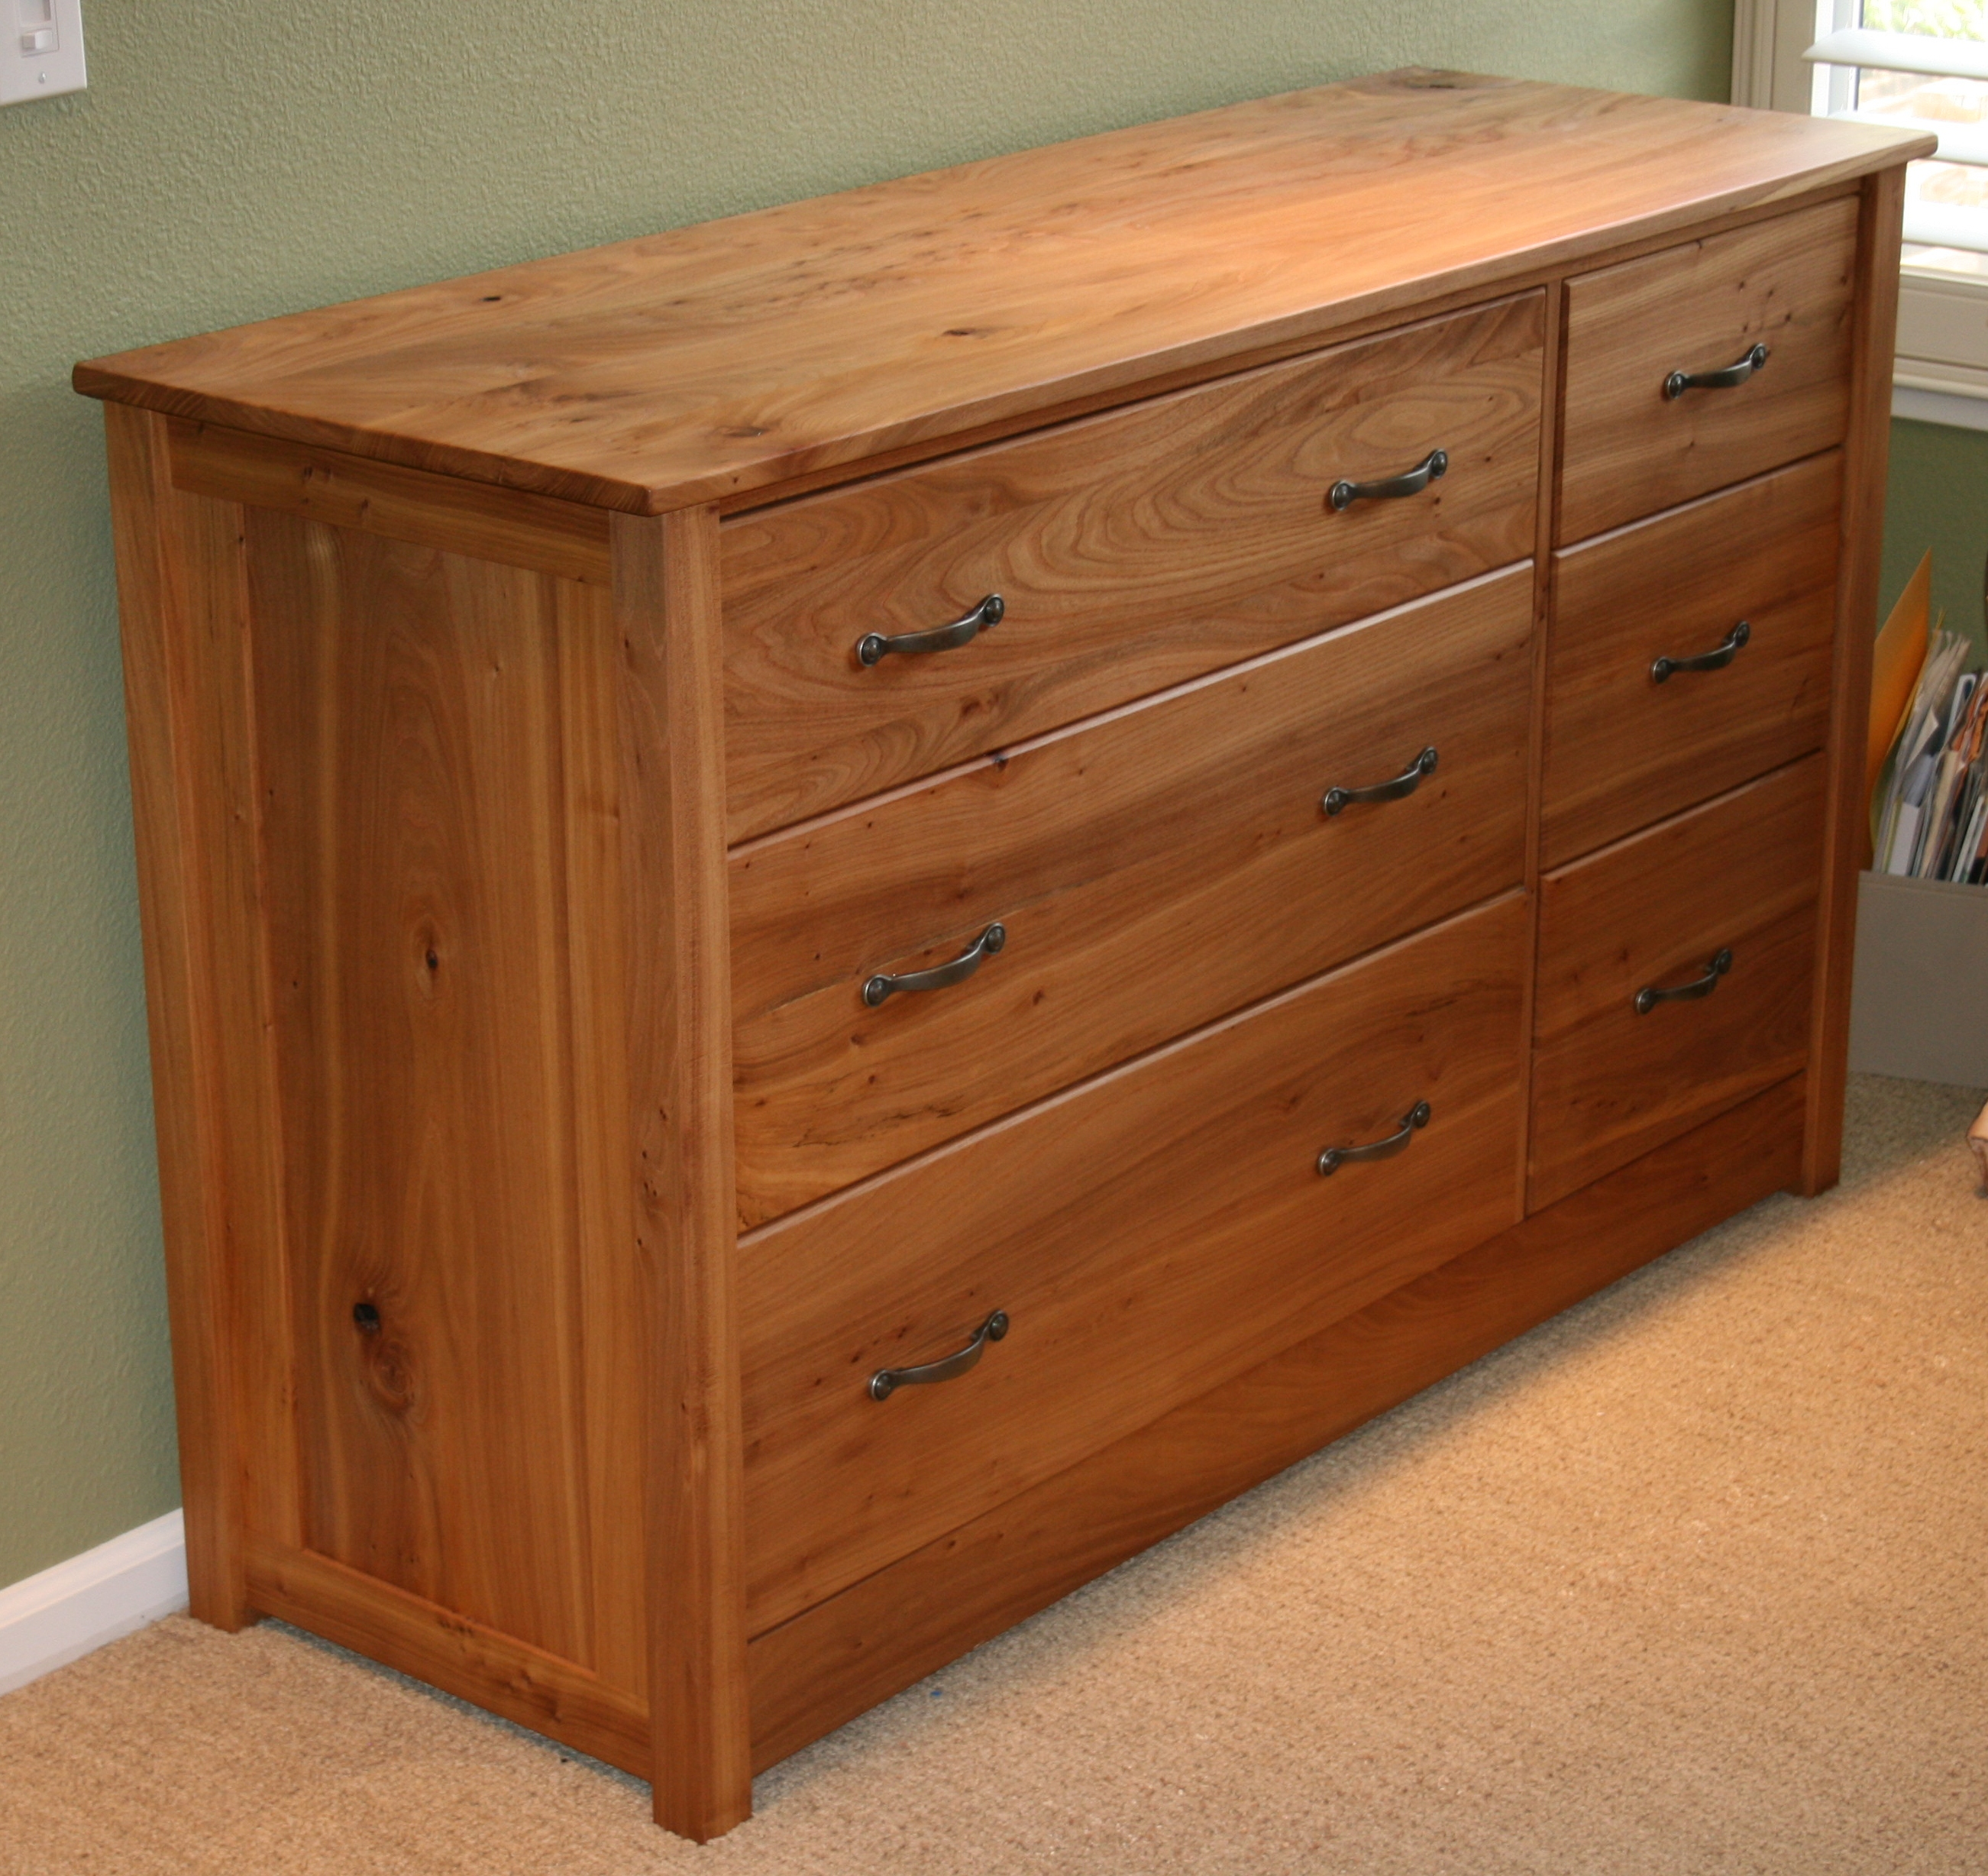 Diy Chest Of Drawers Plans Woodworking Pdf Download Wall